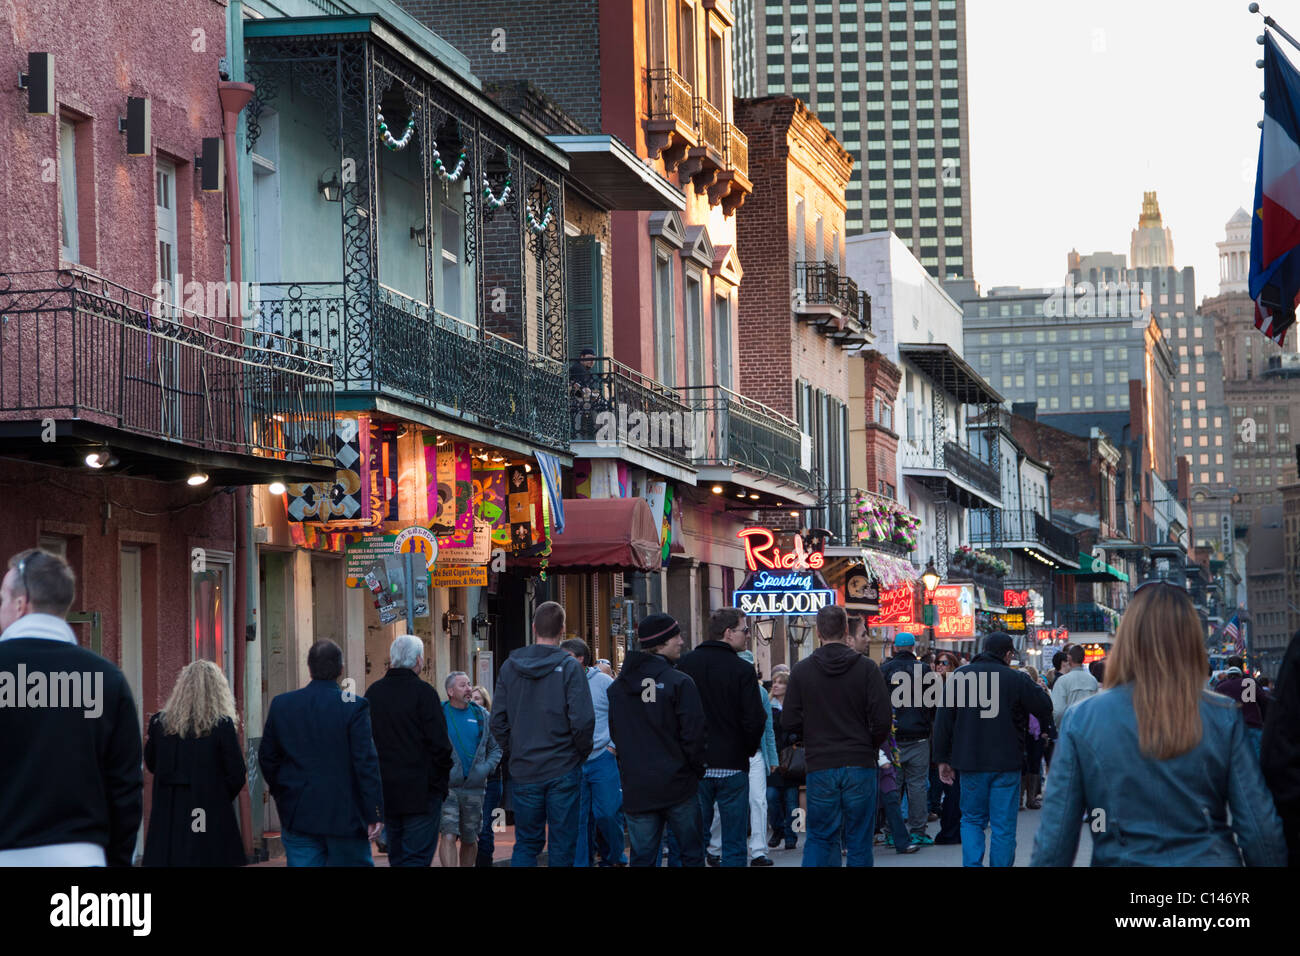 People cruising along bars and nightclubs on Bourbon Street at night in New Orleans - Stock Image